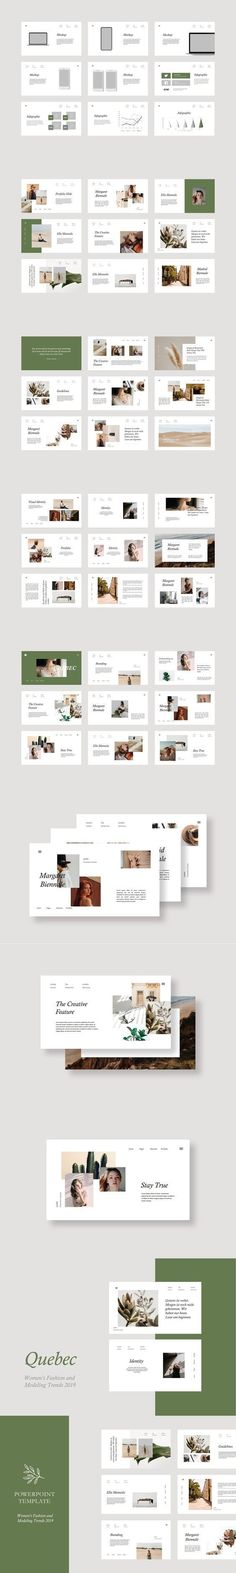 CHLOVIA Powerpoint - Brand Guidelines Brand Presentation, Presentation Templates, License Photo, Text Style, Brand Guidelines, Neutral Colour Palette, Social Media Design, Keynote Template, Branding Design